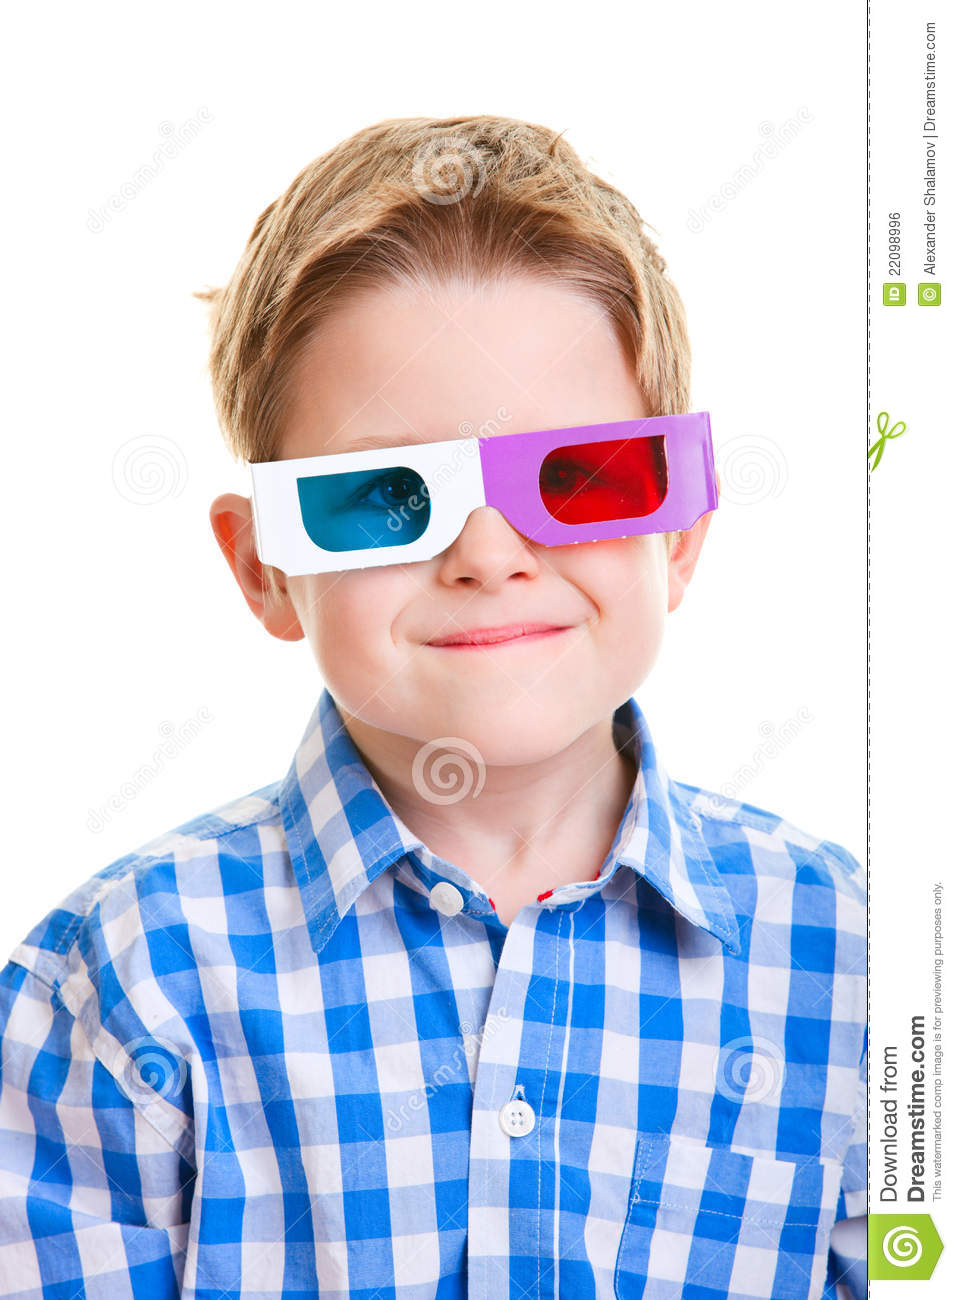 Cute Boy Wearing 3D Glasses Royalty Free Stock Image ...